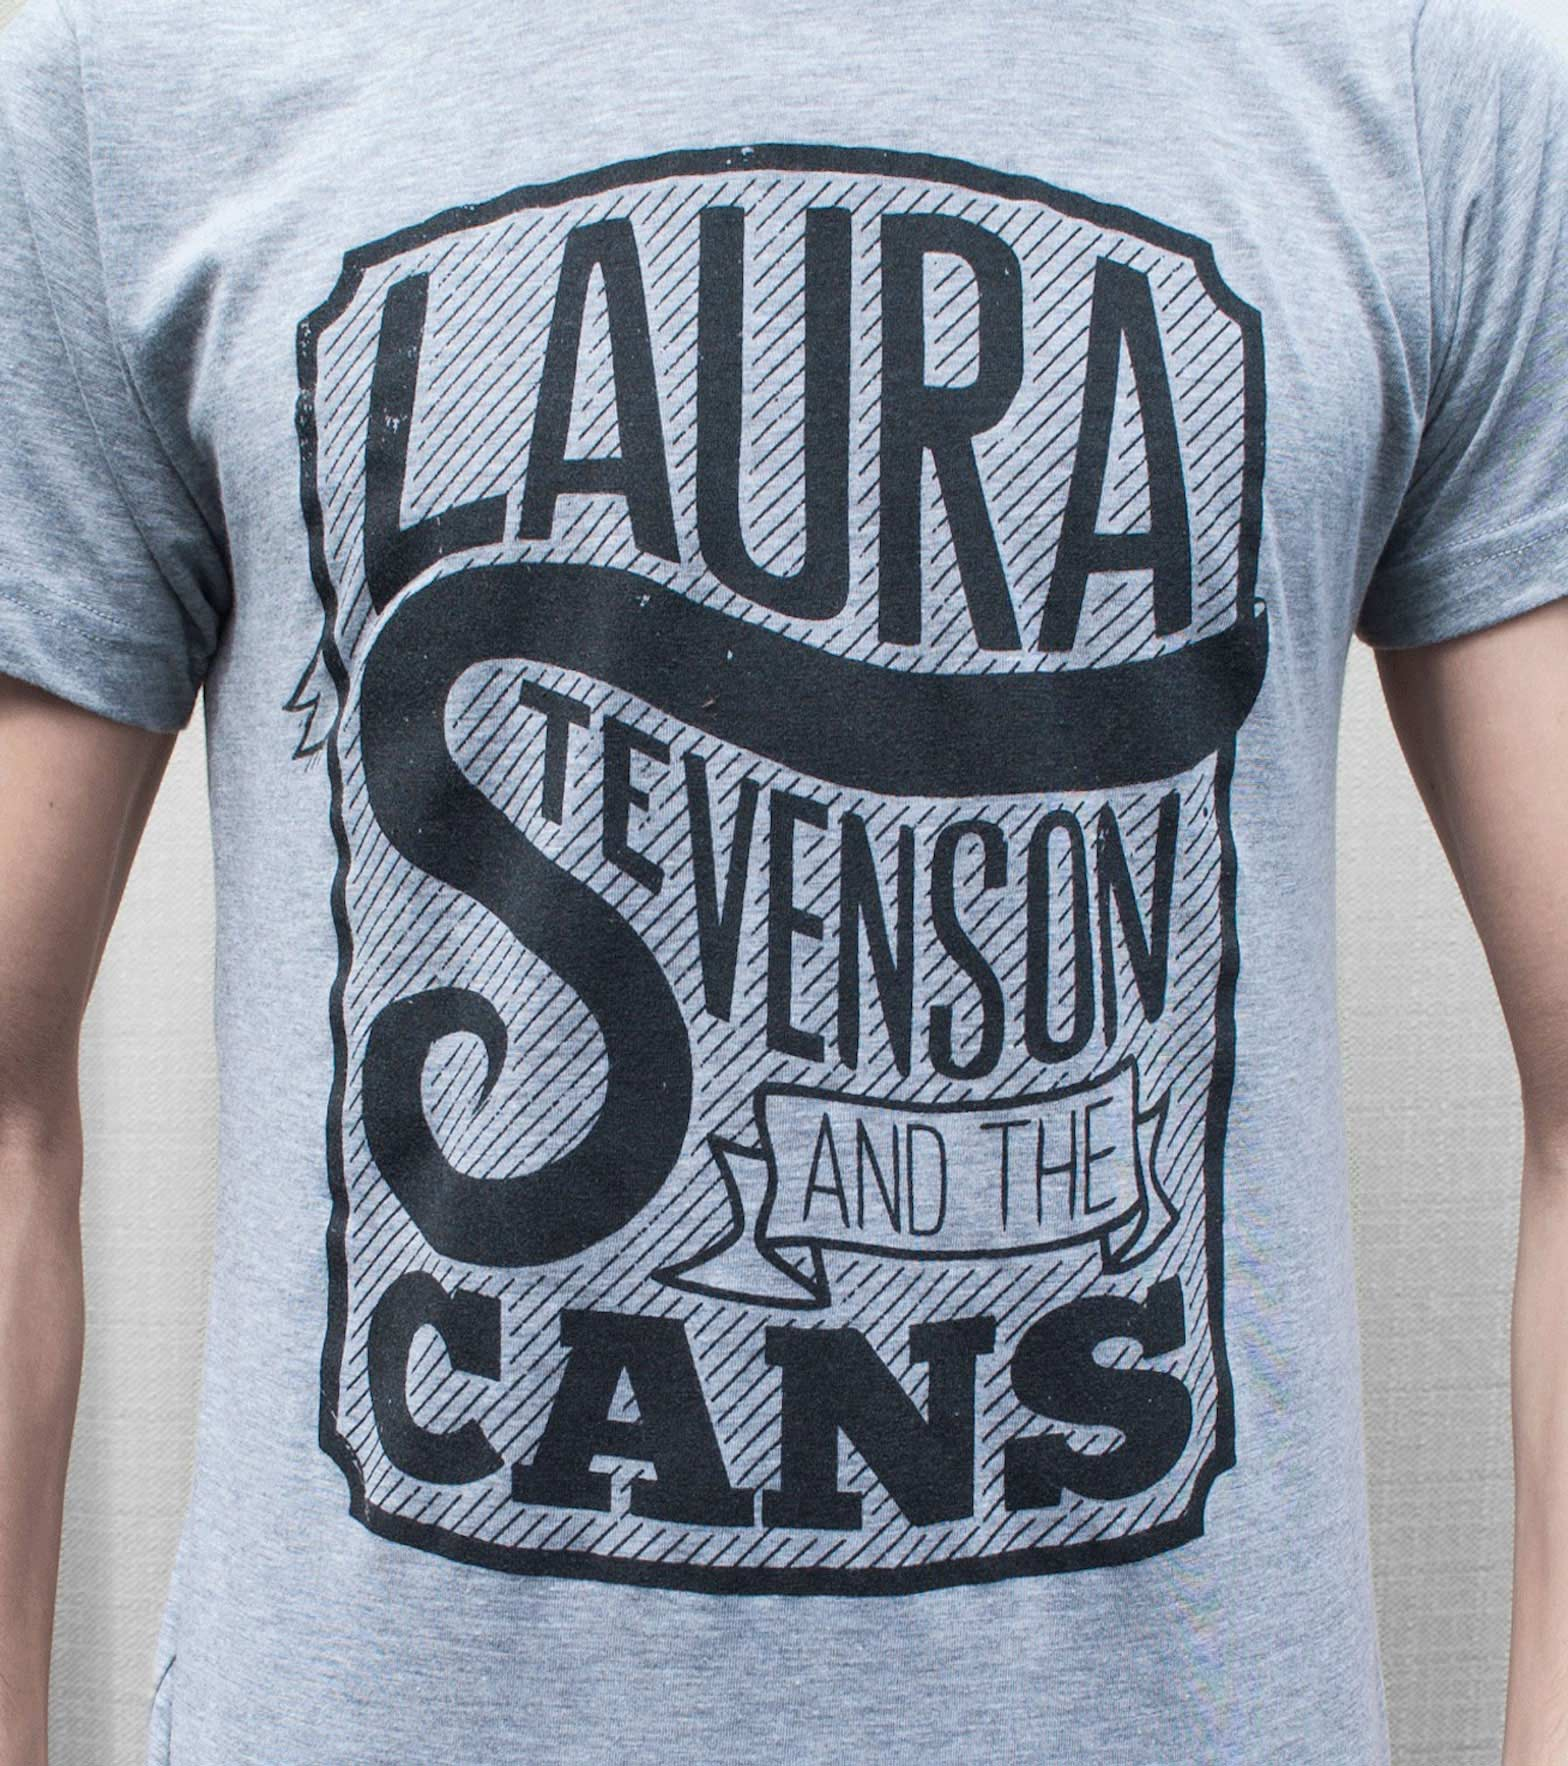 laura stevenson and the cans shirt